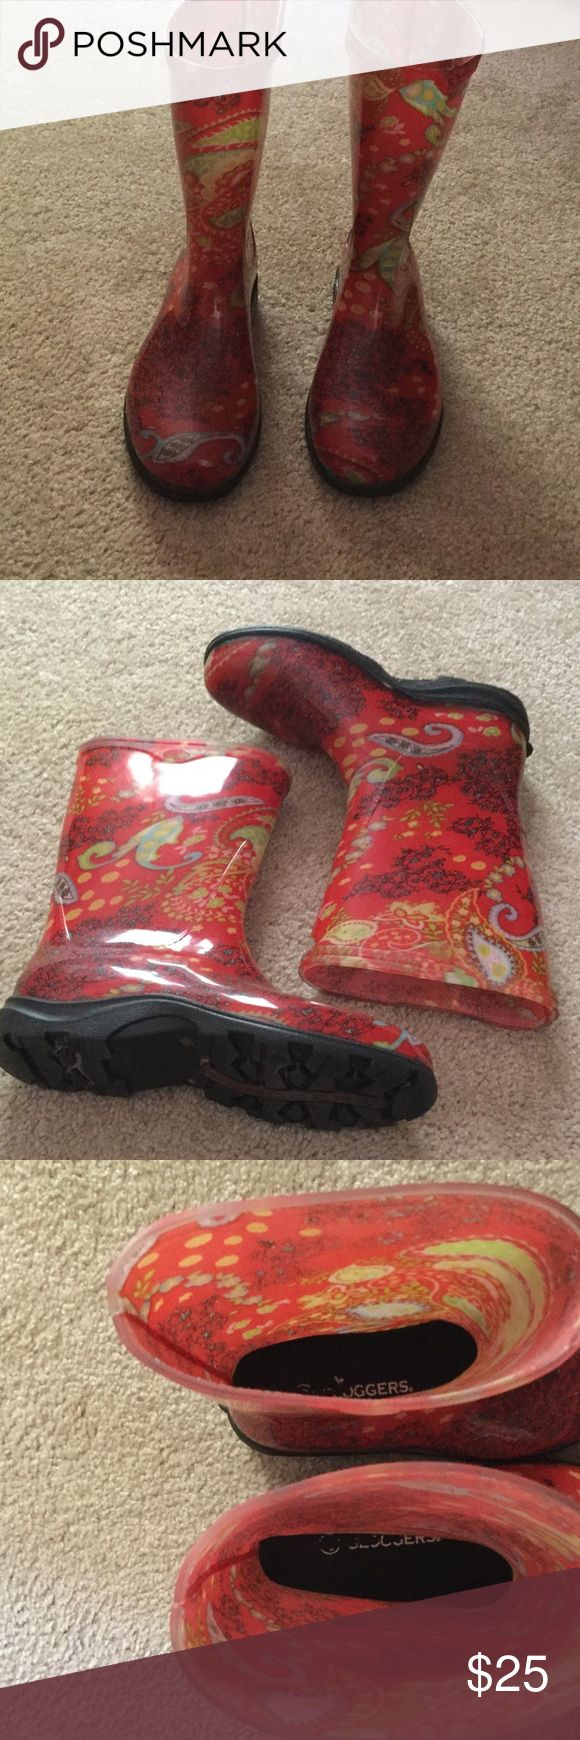 Sloggers Rain & Garden Boots Paisley Print, very good condition.  10 inches from floor to top of boot.  Fits wide calf.  Size is 9 but they say to go up a size so fits more like 8.5. Sloggers Shoes Winter & Rain Boots